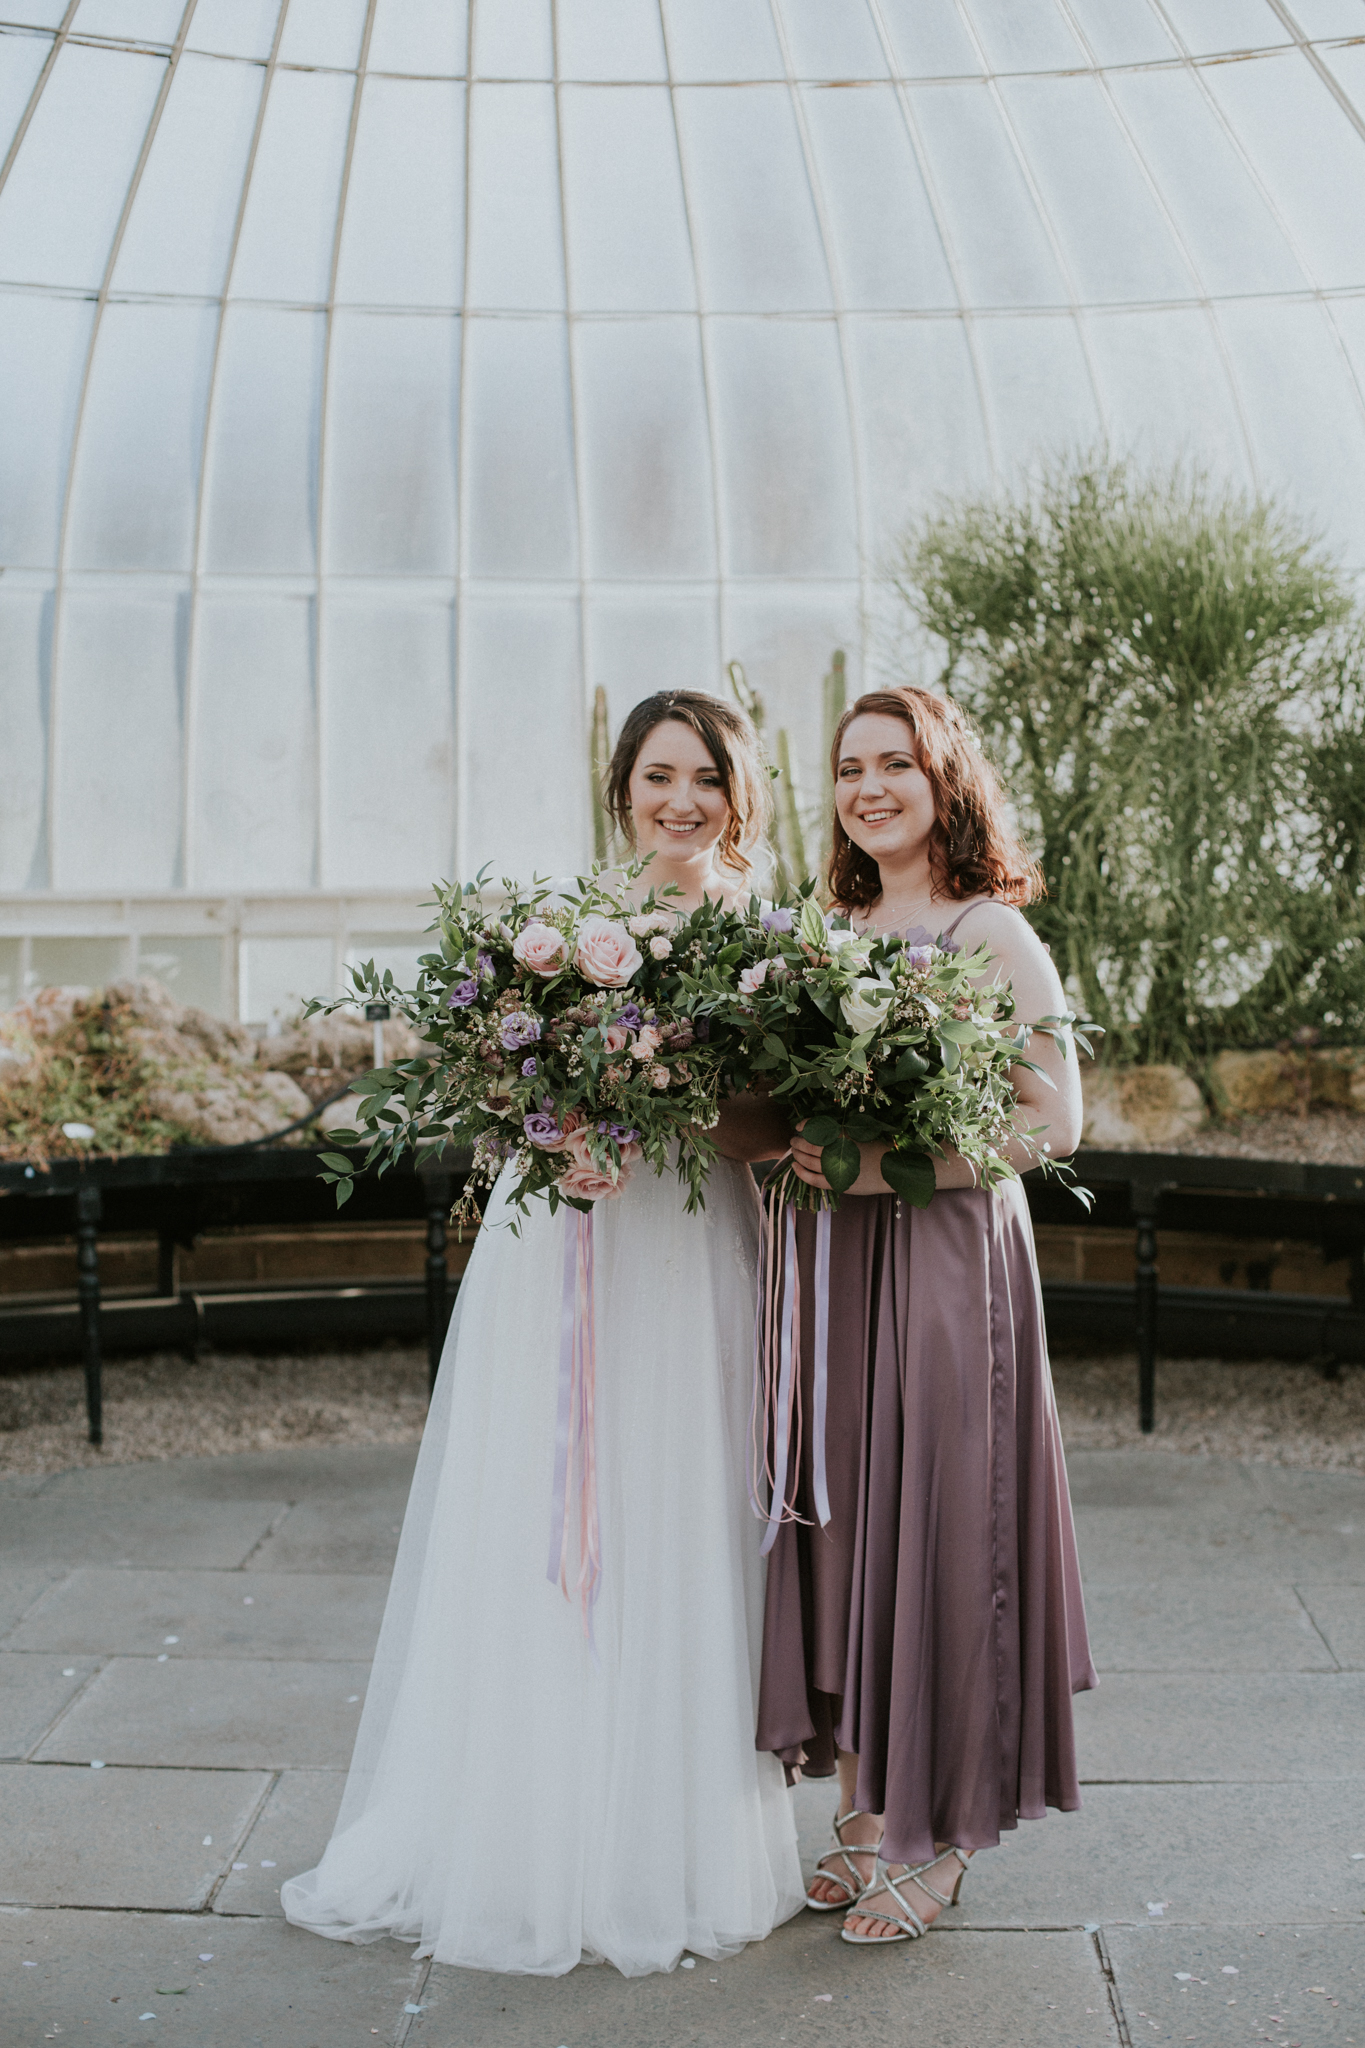 The bride and her bridesmaid's portrait at the Botanic Gardens in Glasgow